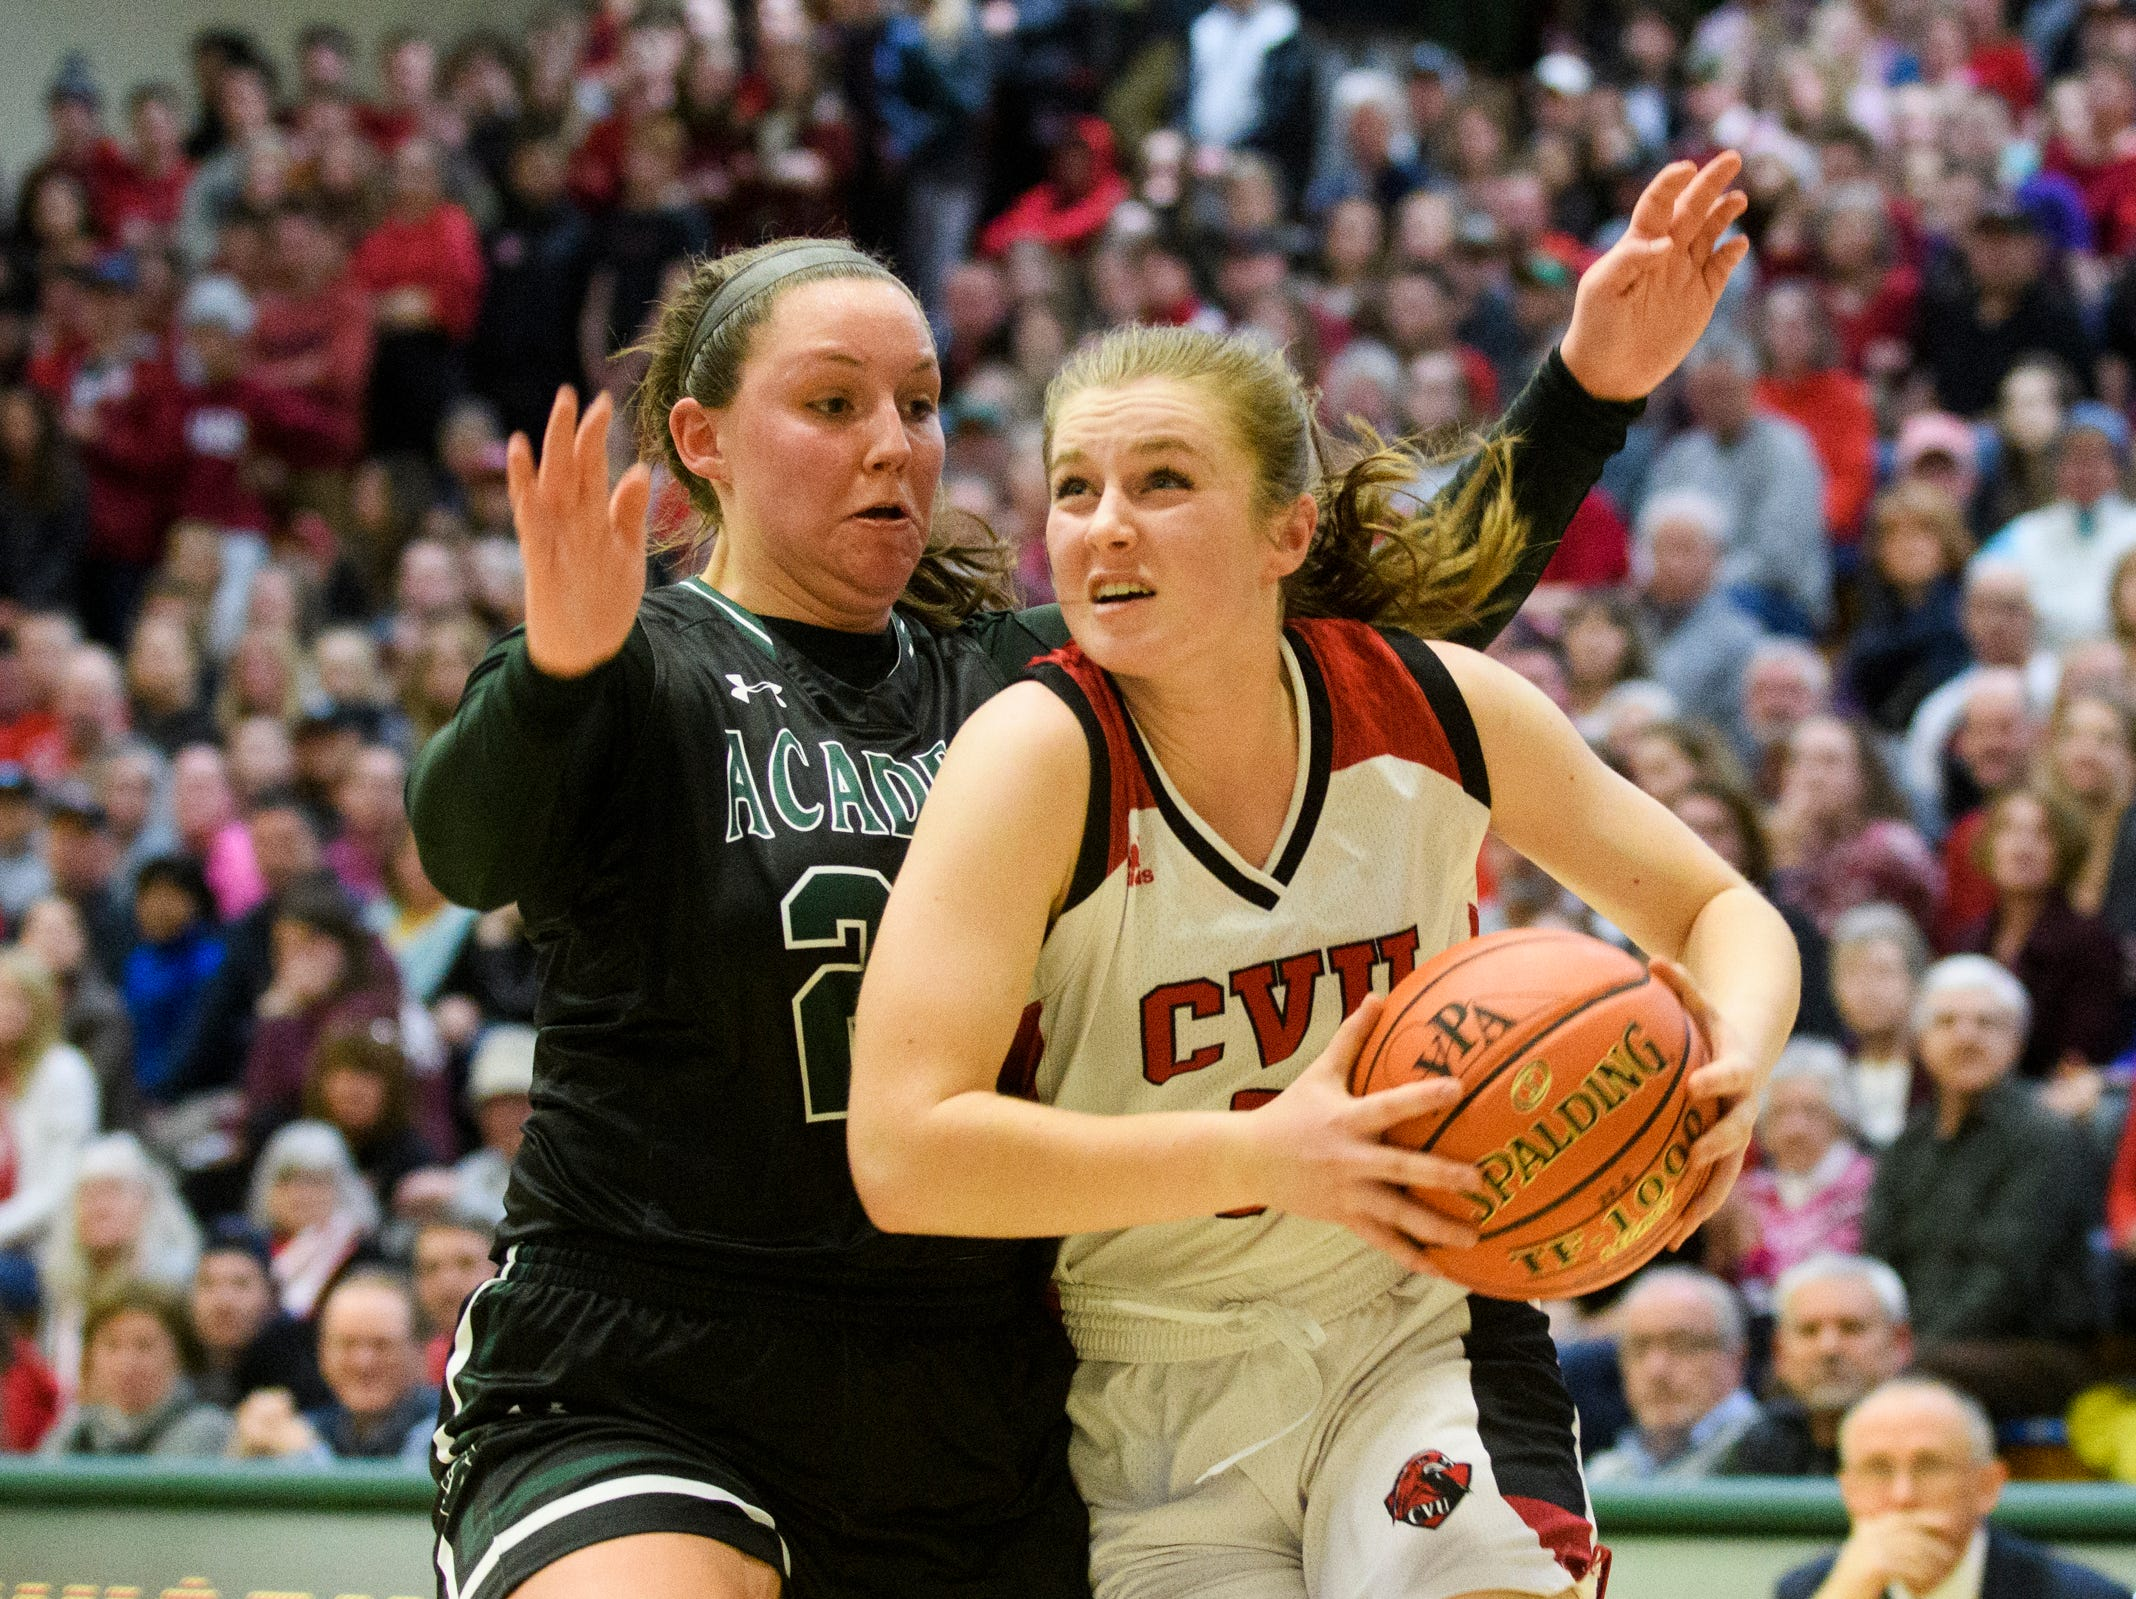 CVU's Mary Askew (5) drives to the hoop past St. Johnsbury's Josie Choiniere (24) during the division I girls basketball championship basketball game between the St. Johnsbury Hilltoppers and the Champlain Valley Union Redhawks at Patrick Gym on Sunday afternoon March 10, 2019 in Burlington, Vermont.